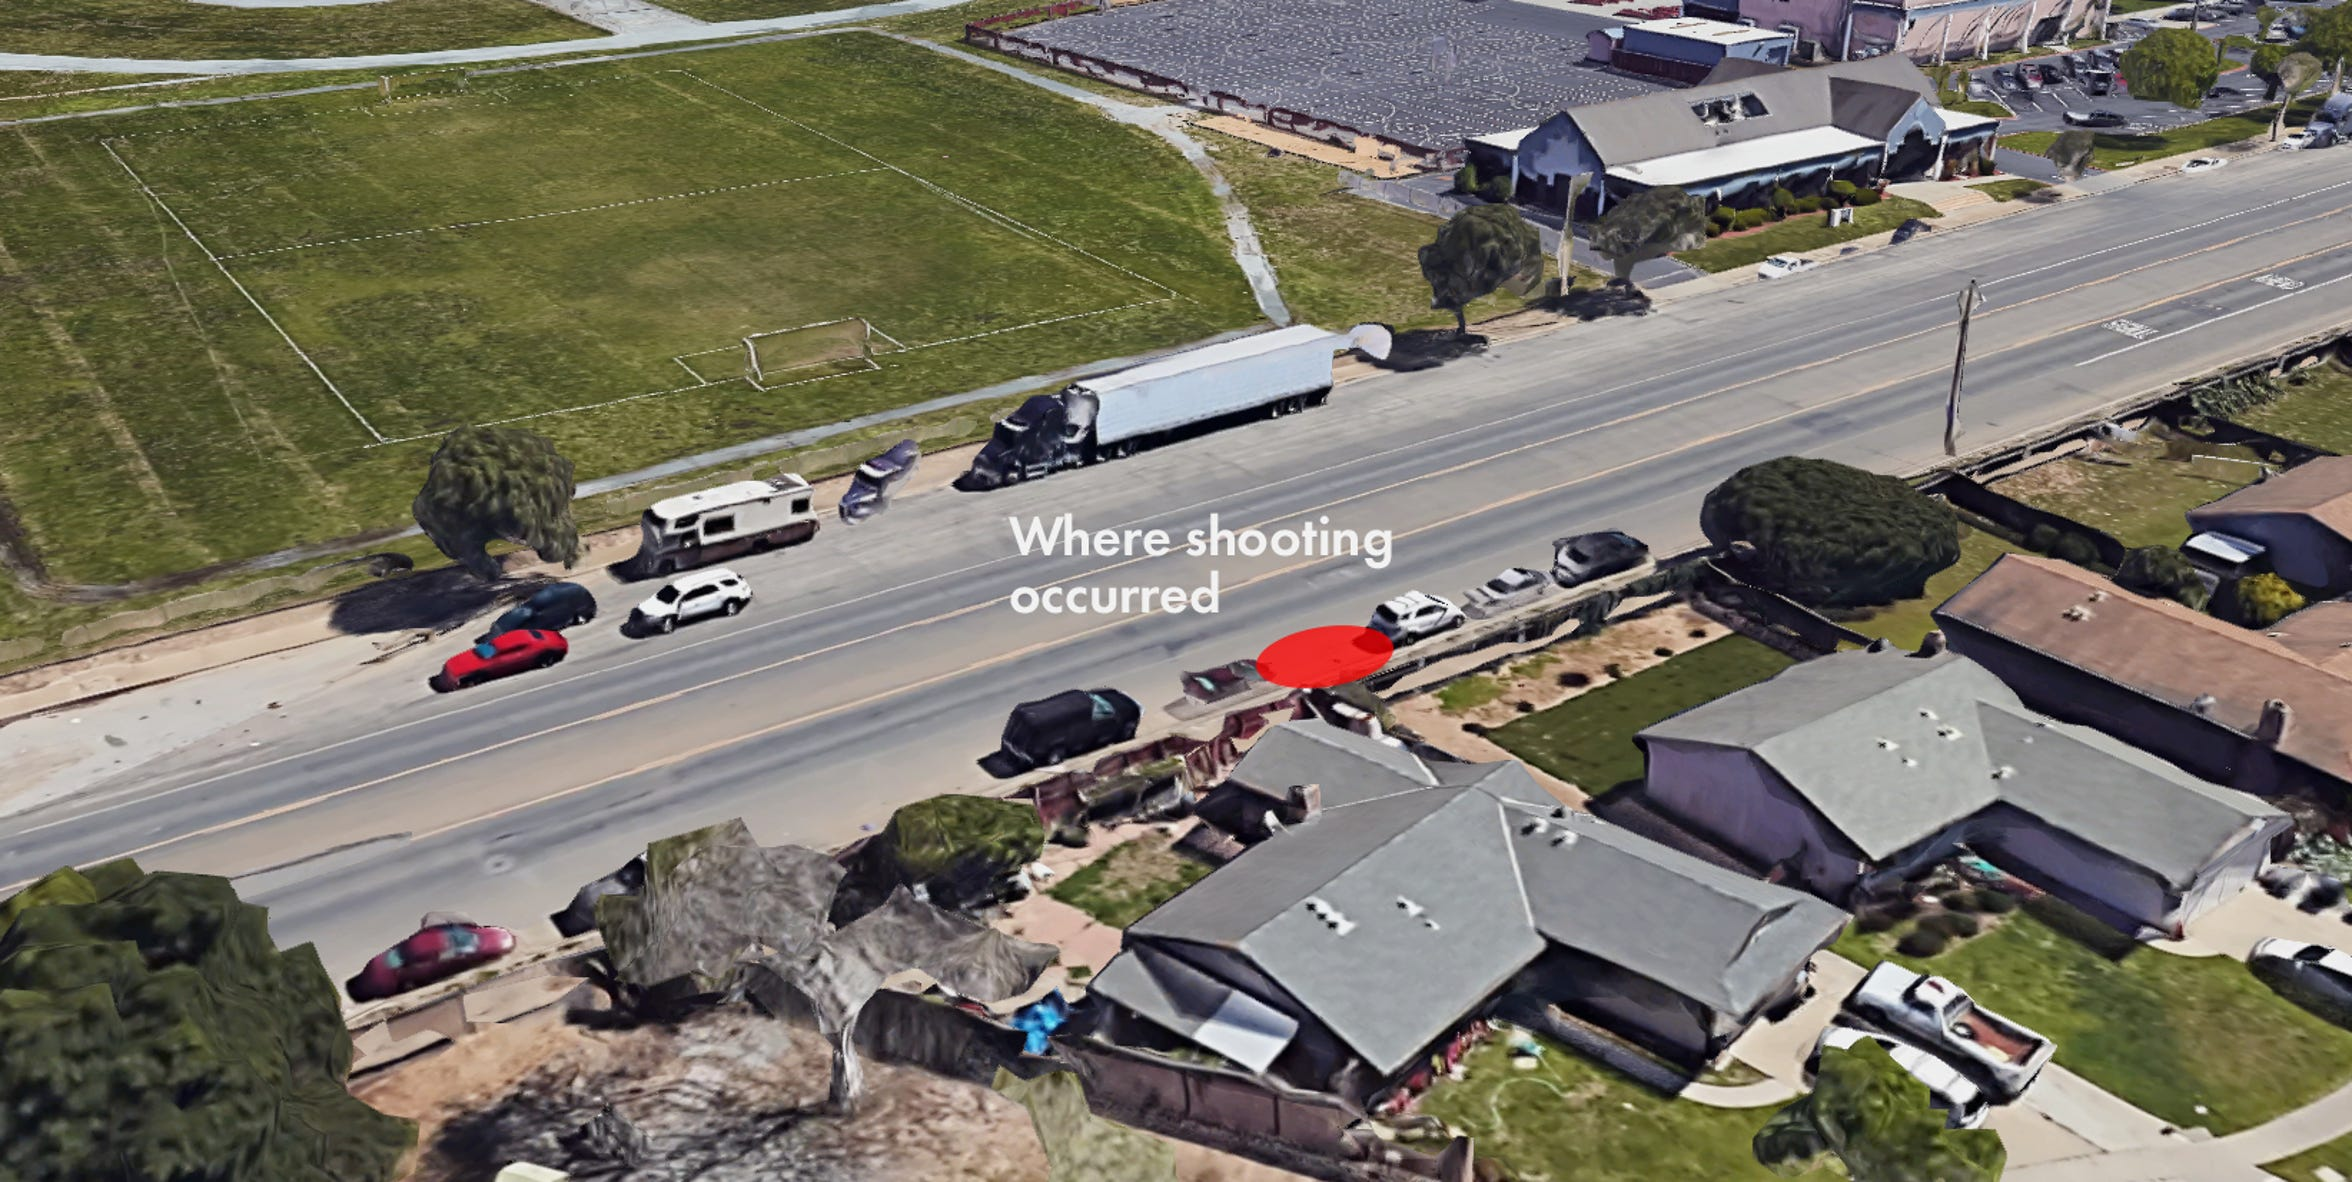 A 3-D image from Google Maps shows approximately where the shooting occurred.